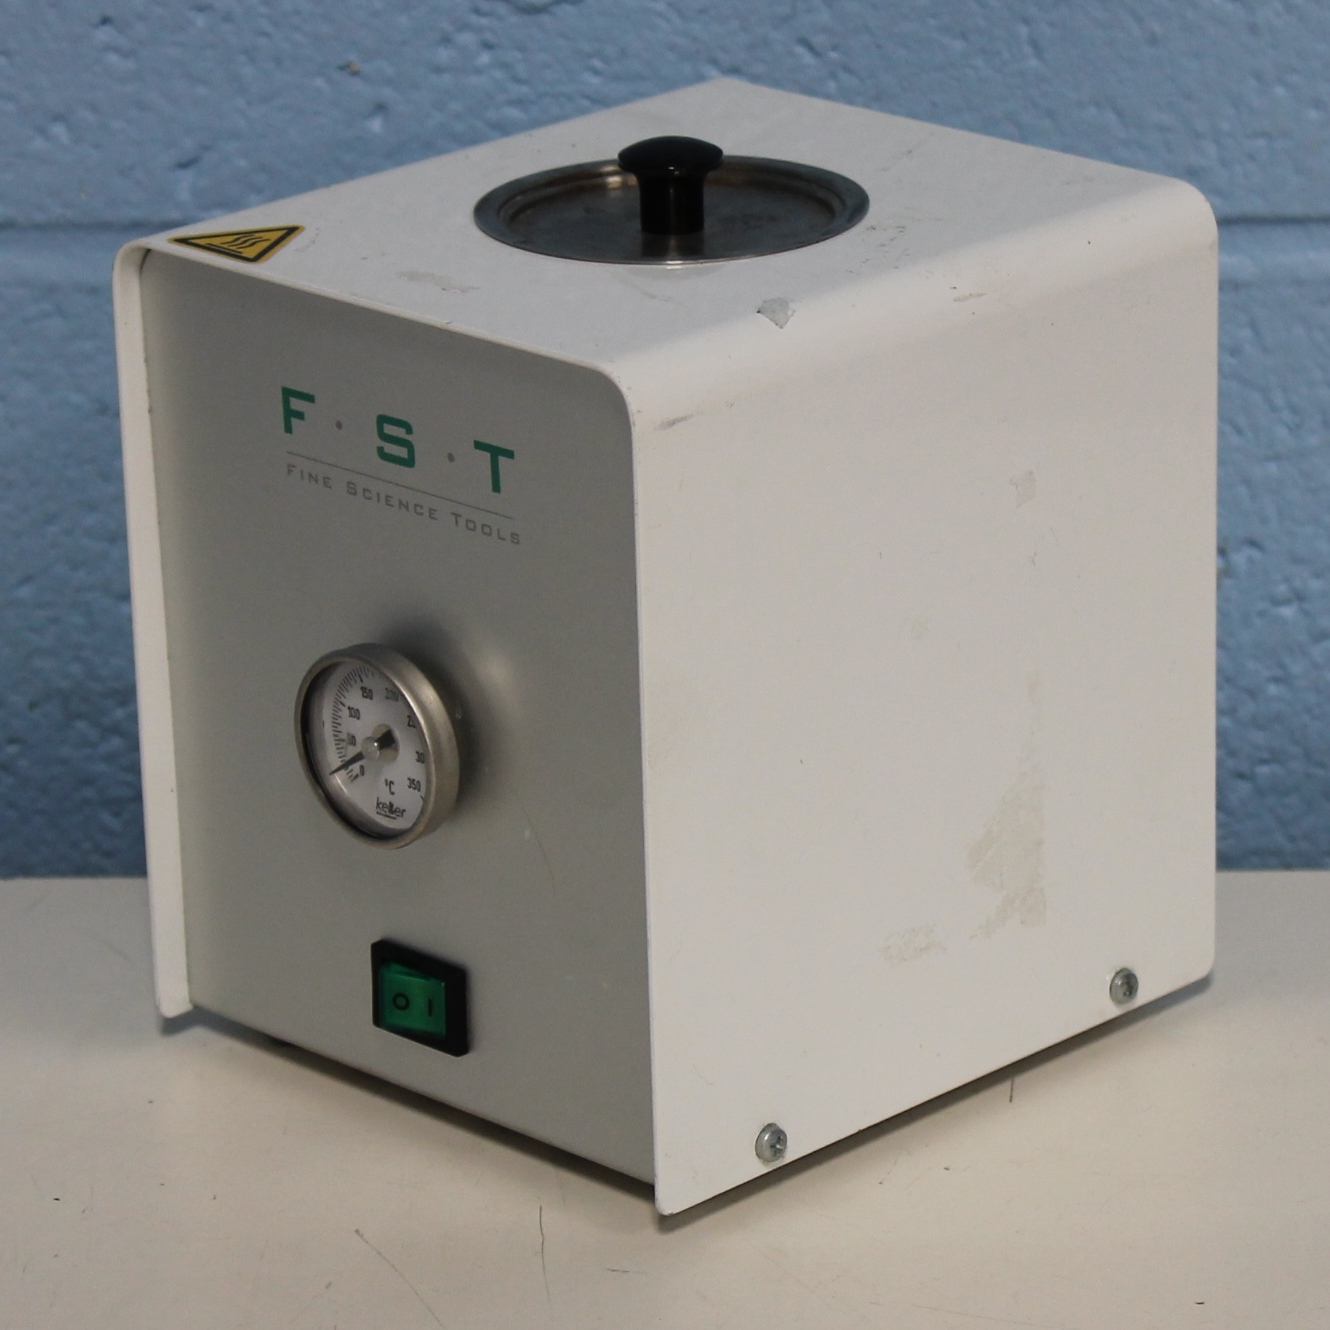 KeLLer FST Fine Scientific Tools 250 Heater Image